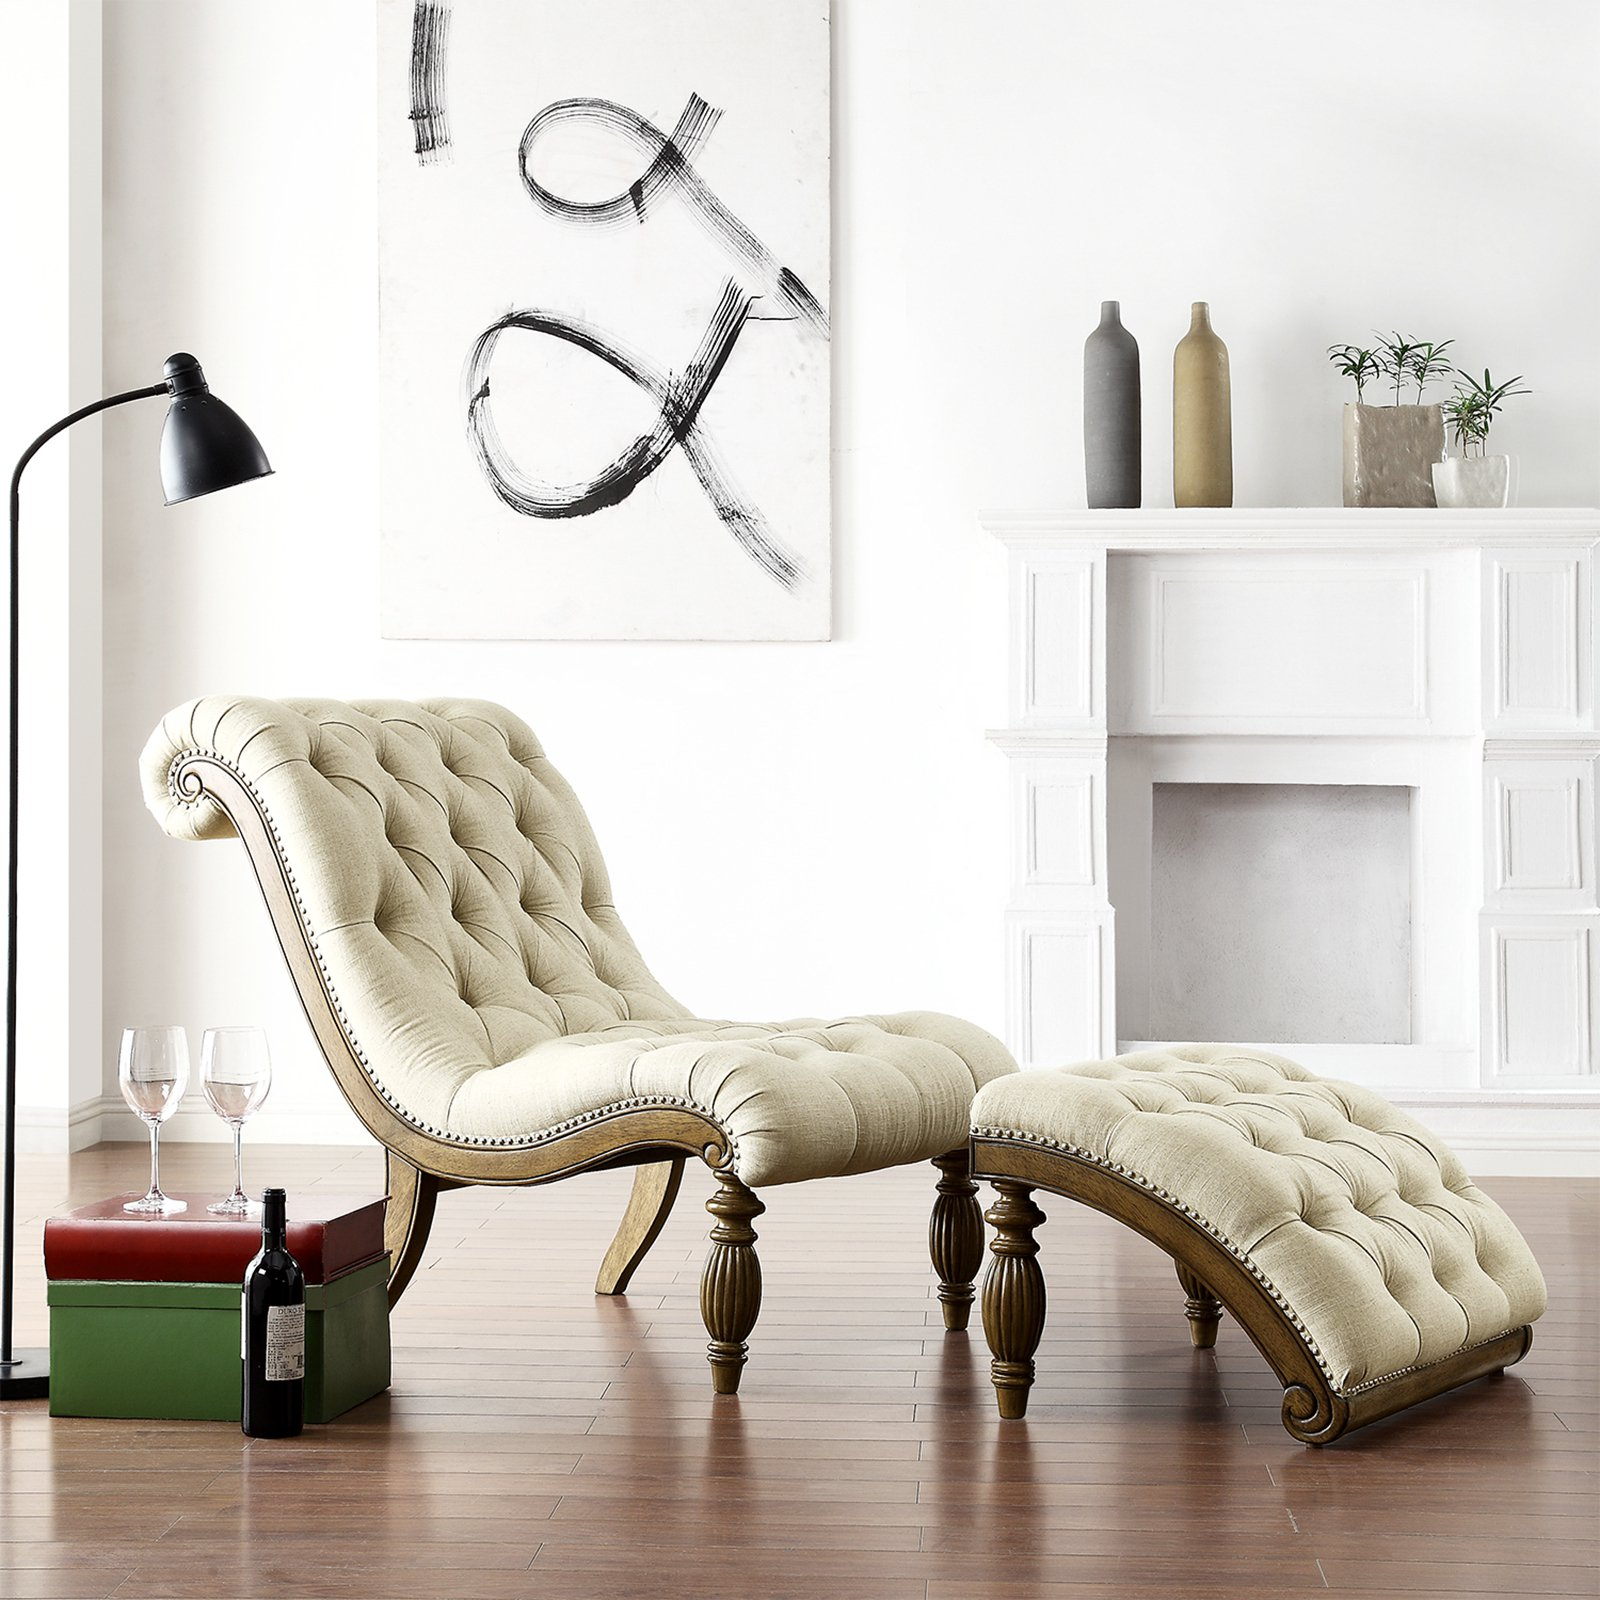 Weston Home Beige Linen Button Tufted Chaise and Ottoman - Light Distressed Driftwood